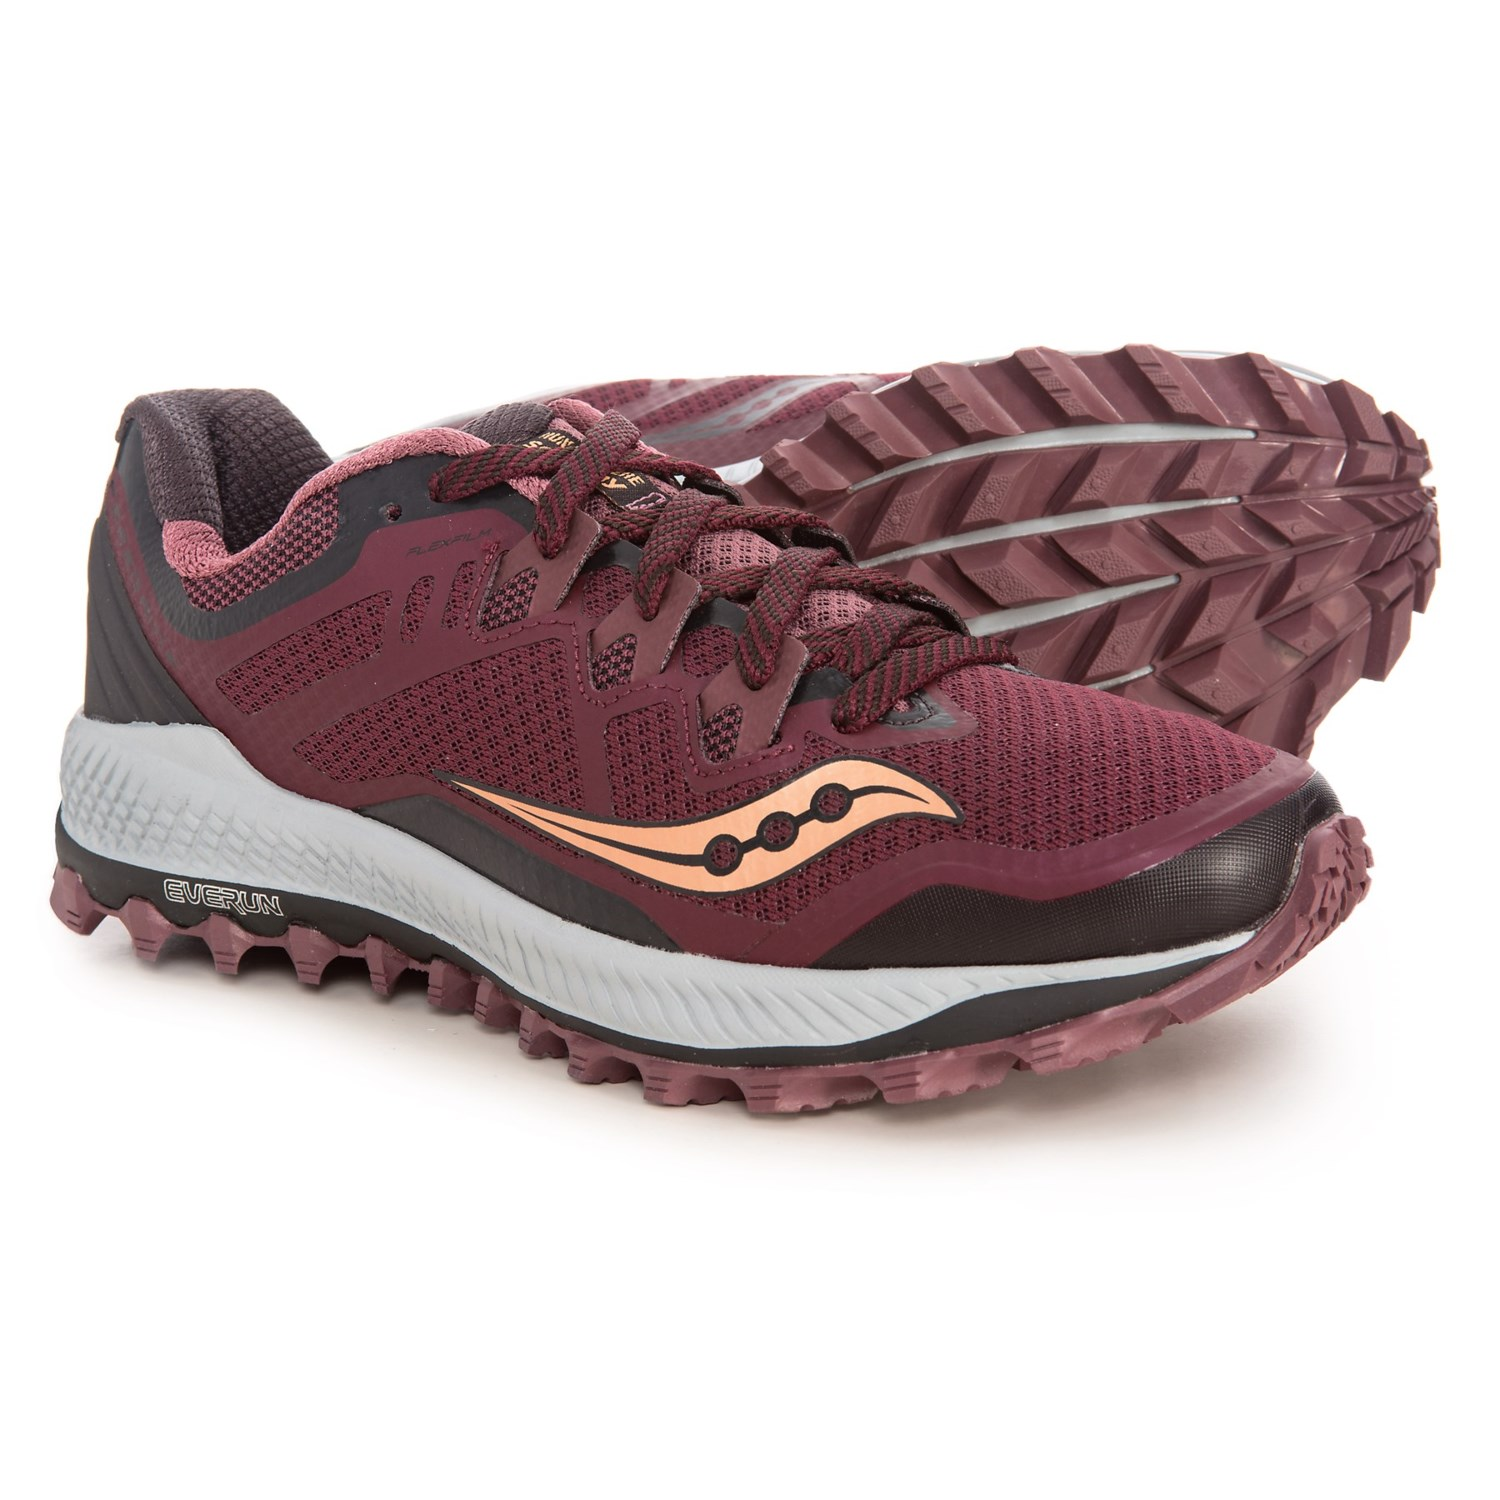 1d8eee739319 Saucony Peregrine 8 Trail Running Shoes (For Women) in Wine Peach